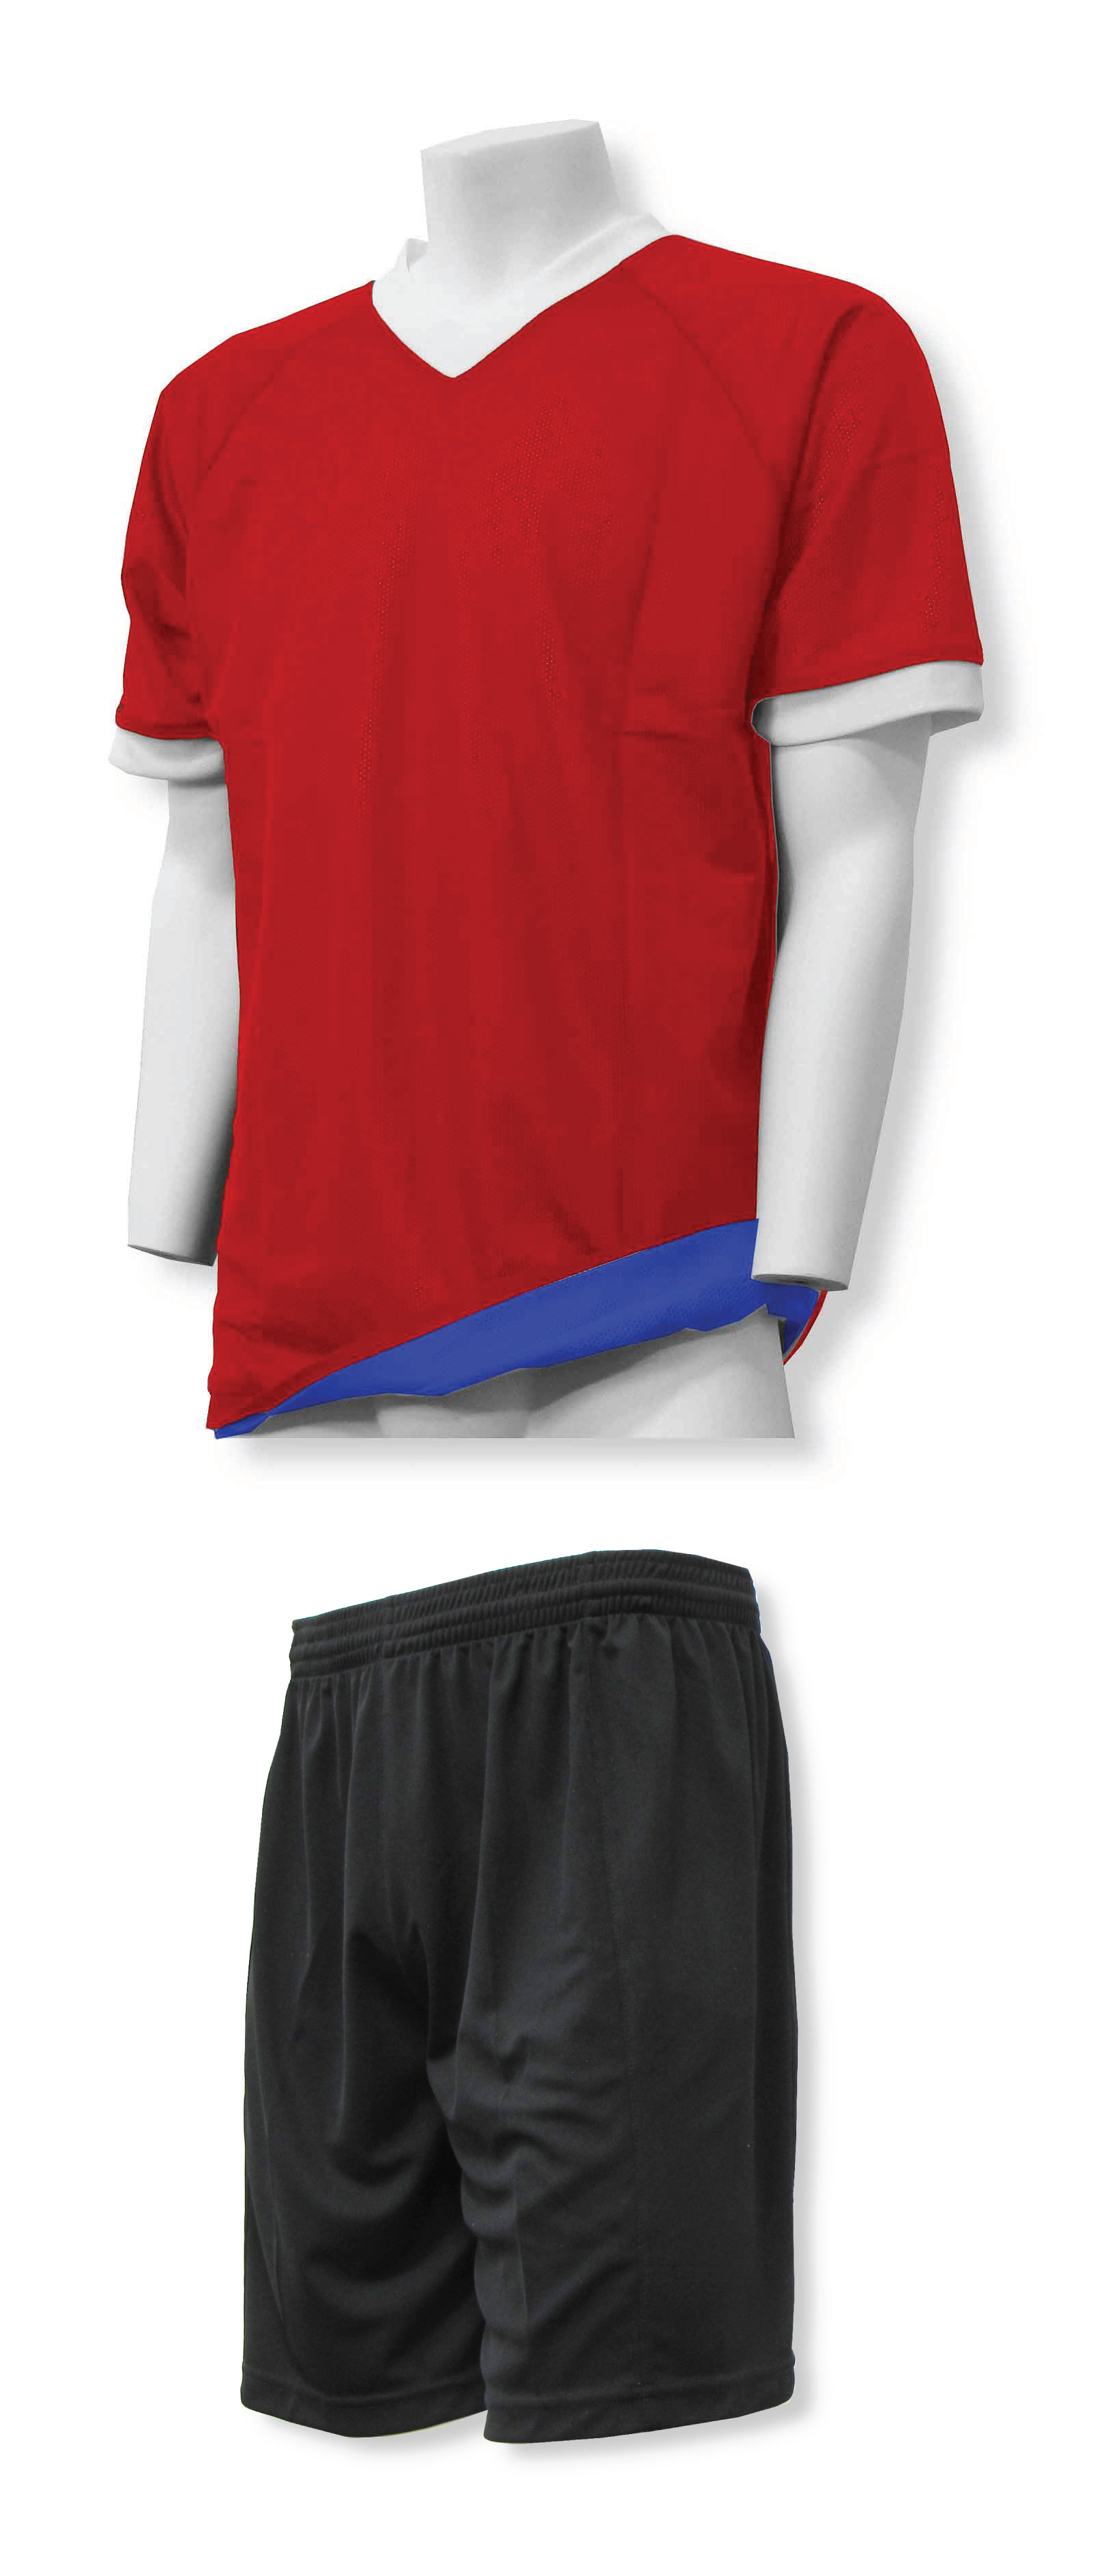 Reversible sports uniform jersey in red/royal with black shorts by Code Four Athletics